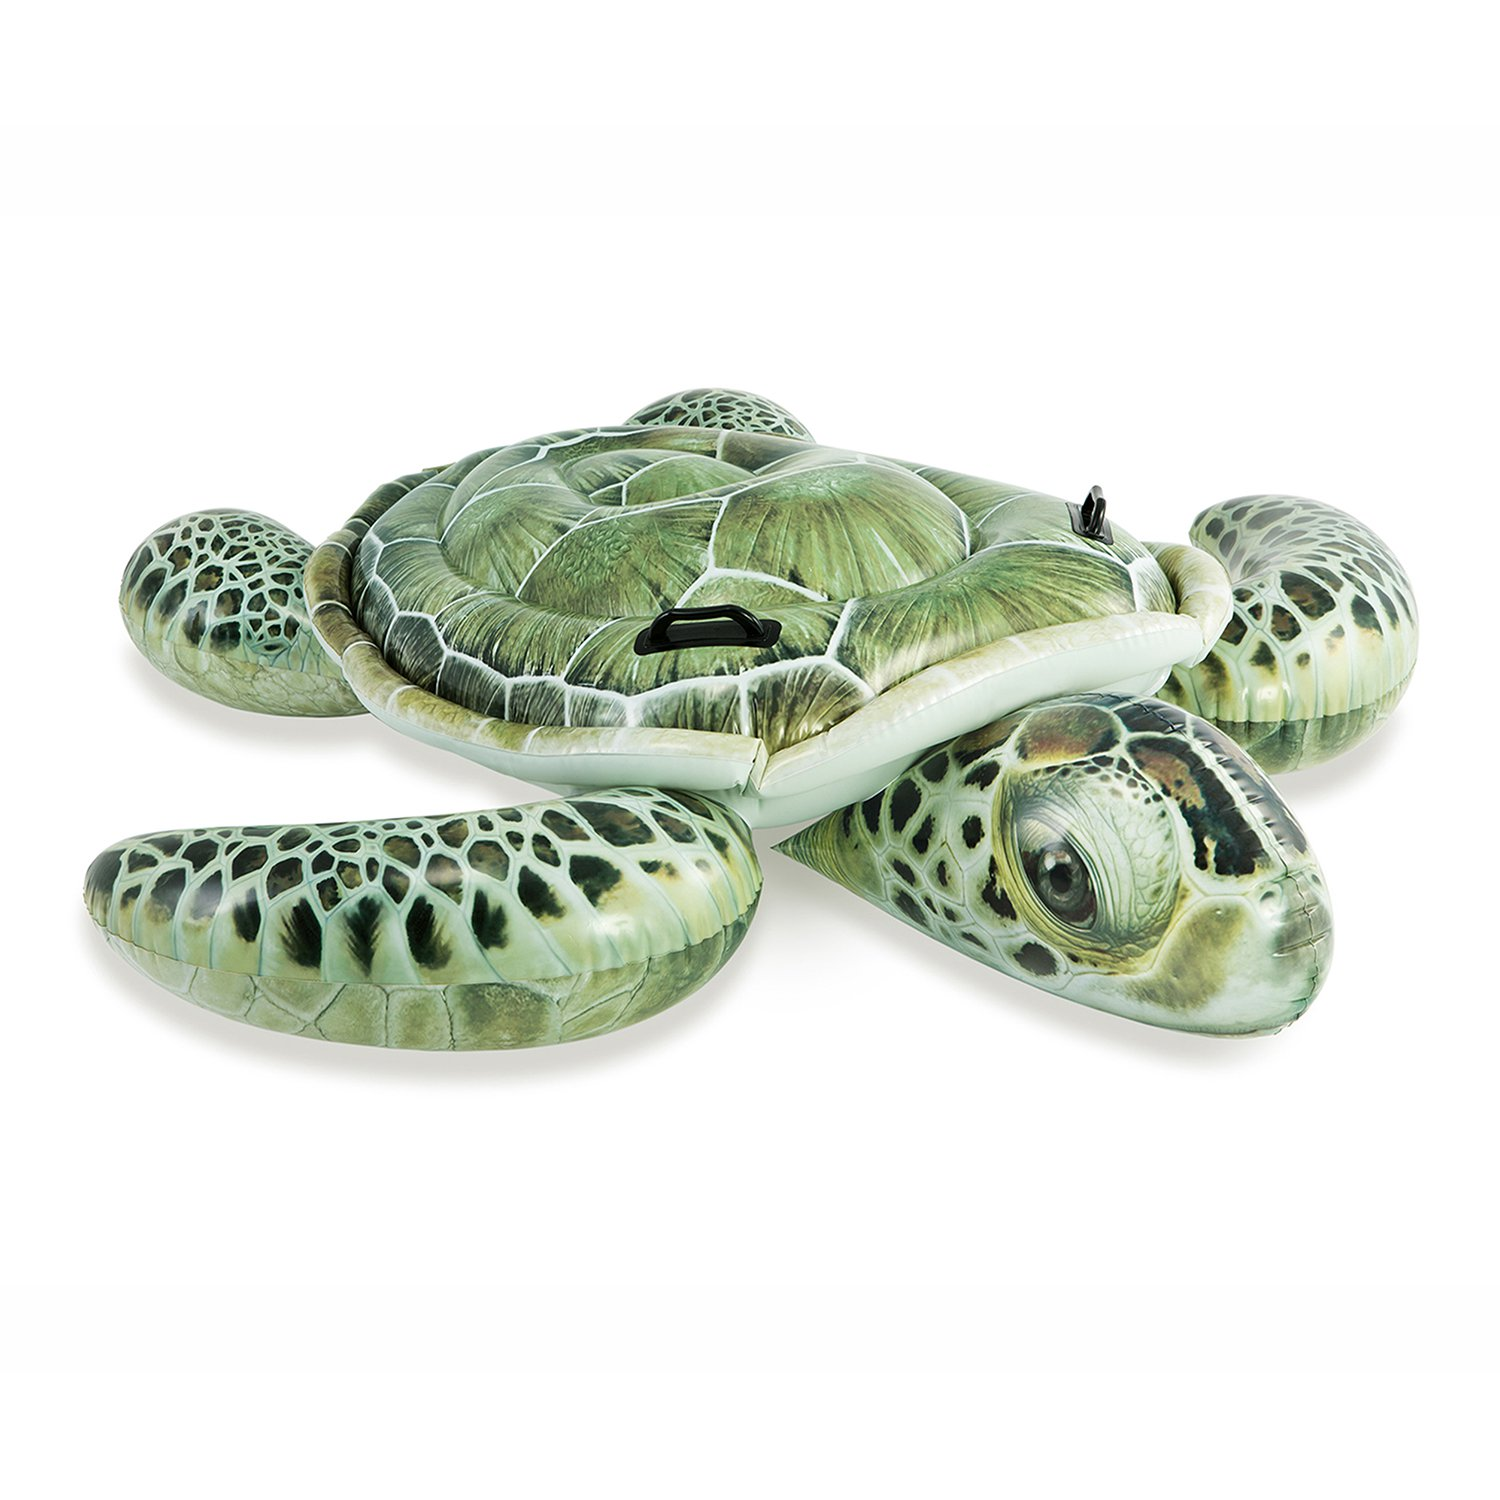 Intex Realistic Sea Turtle Inflatable Ride-On Pool Float with Handles   57555EP